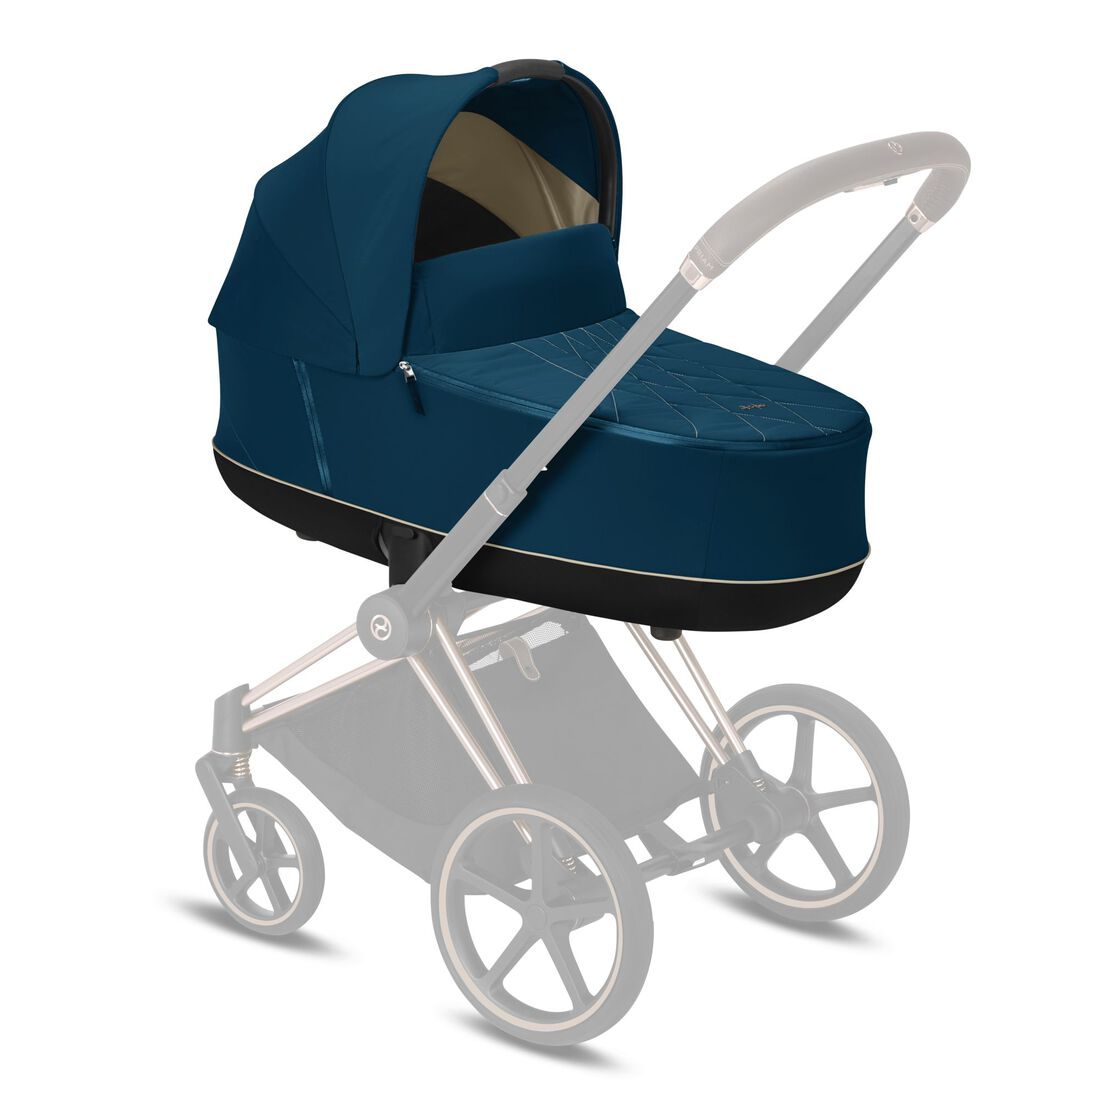 CYBEX Priam Lux Carry Cot - Mountain Blue in Mountain Blue large image number 5